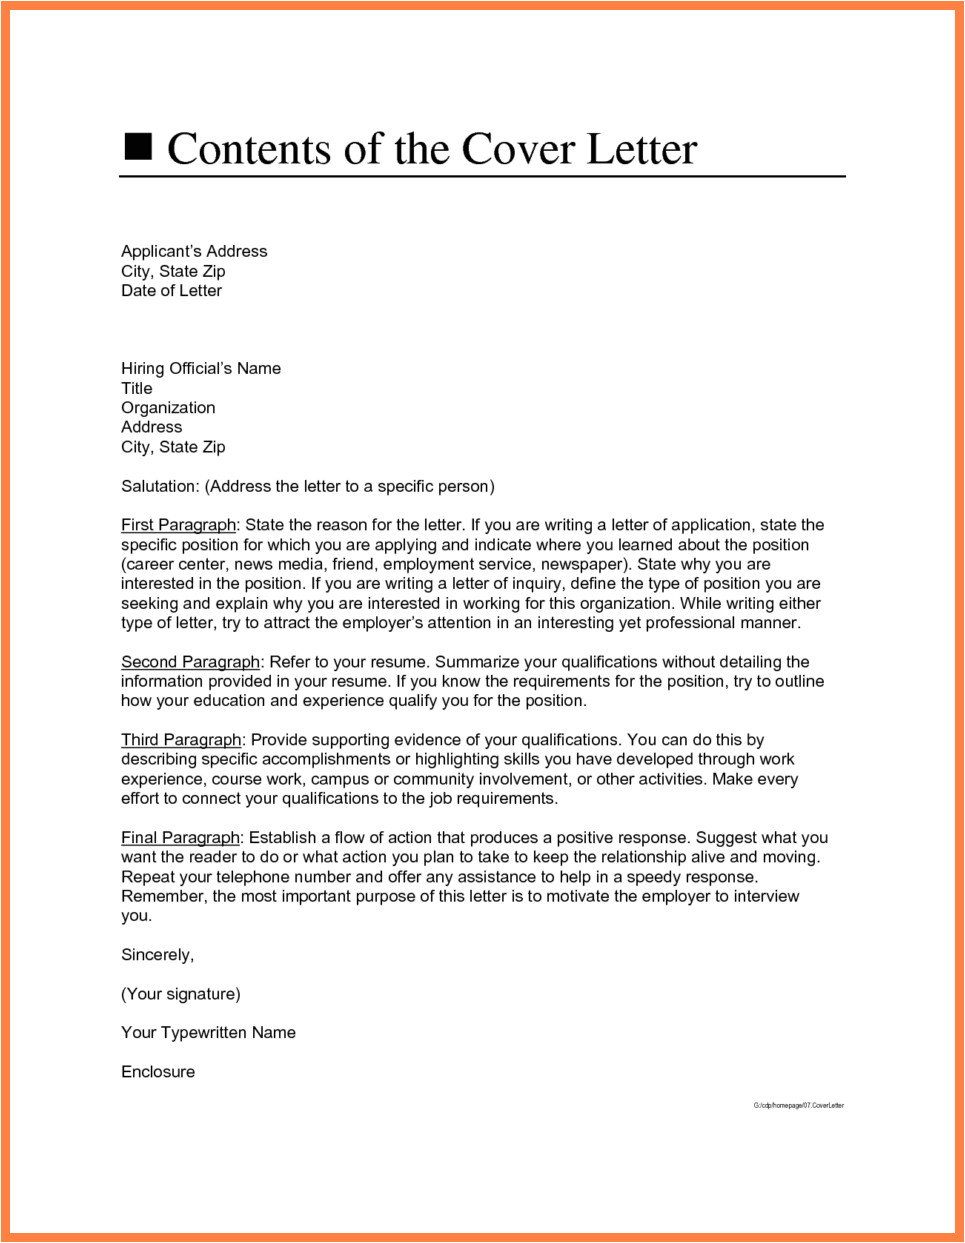 Cover Letter when You Know the Hiring Manager 5 Cover Letter Address Marital Settlements Information